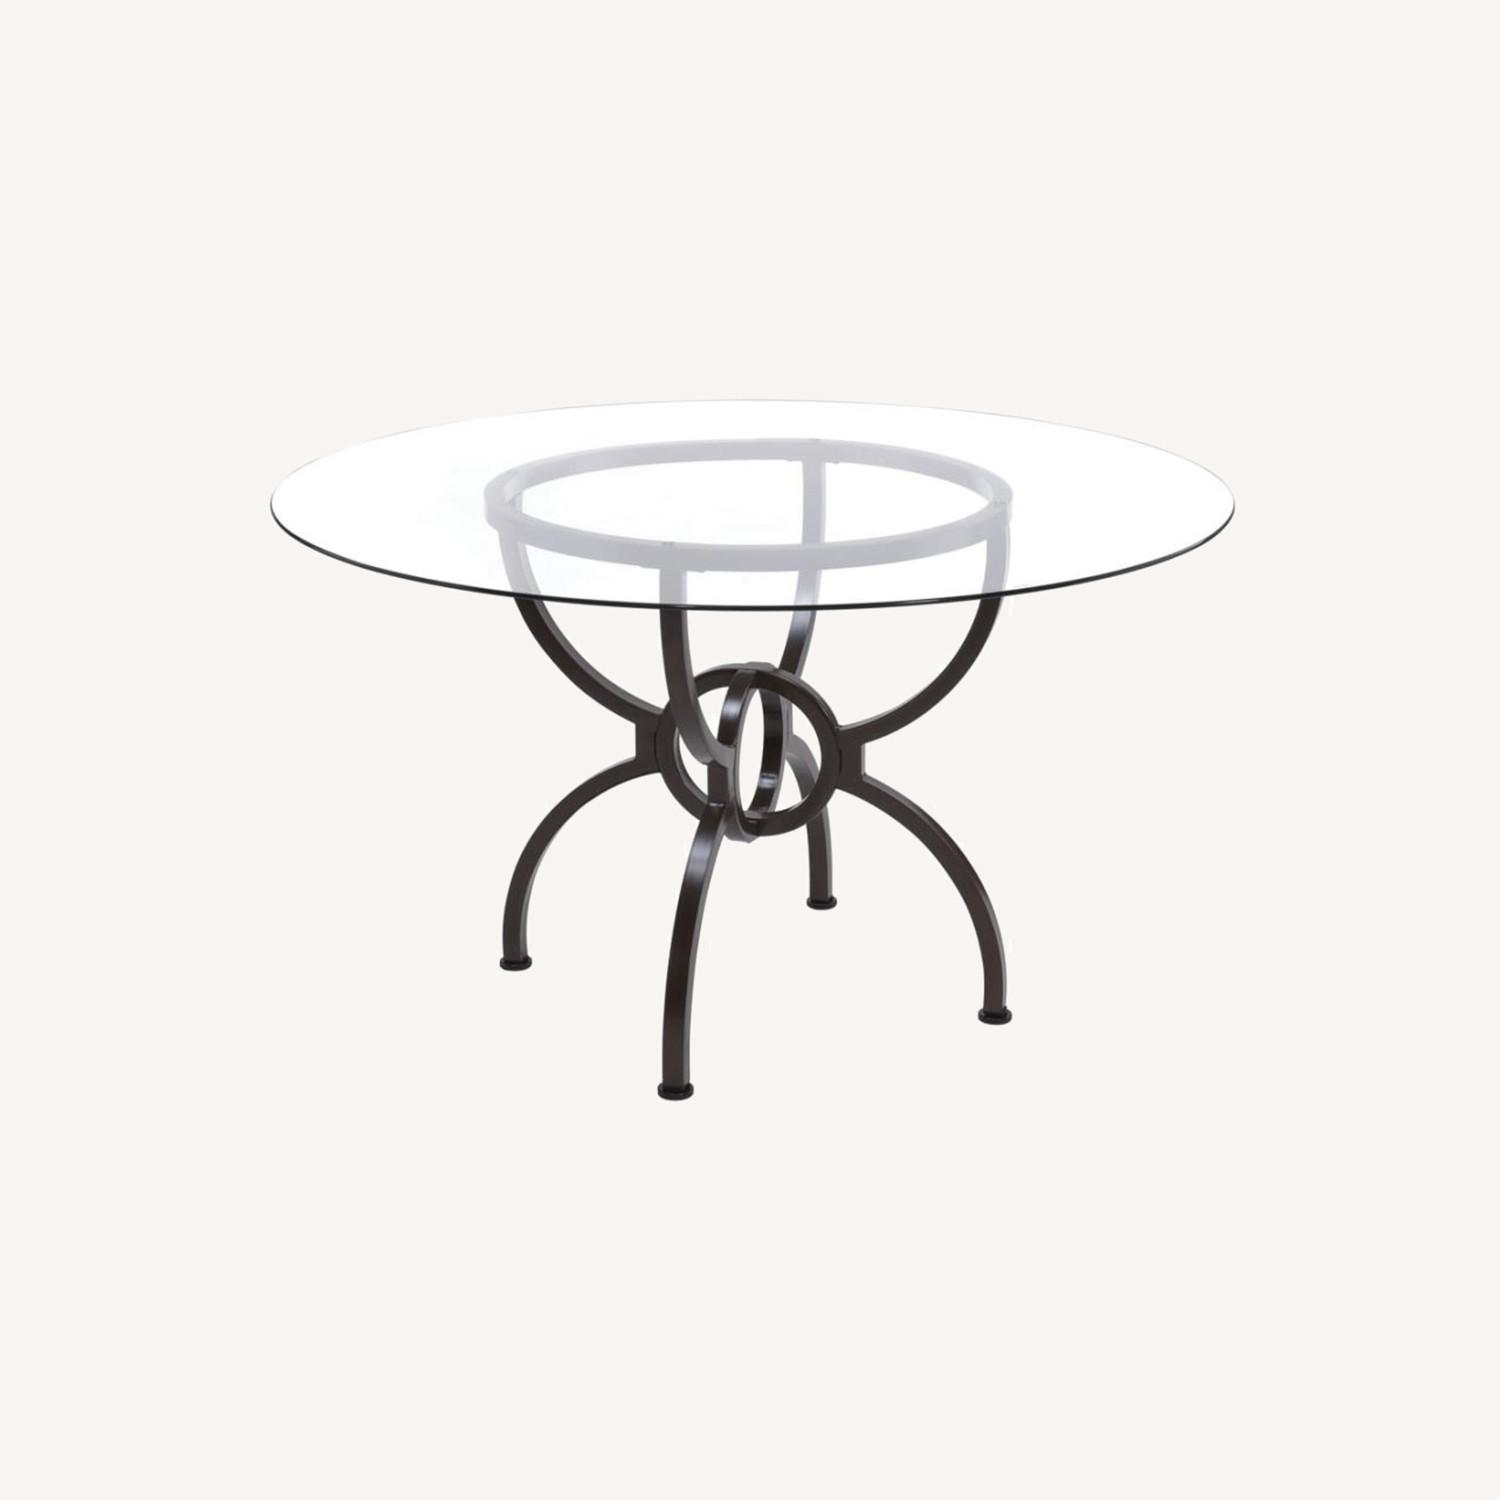 Dining Table In Gunmetal Base W/ Clear Glass Top - image-8